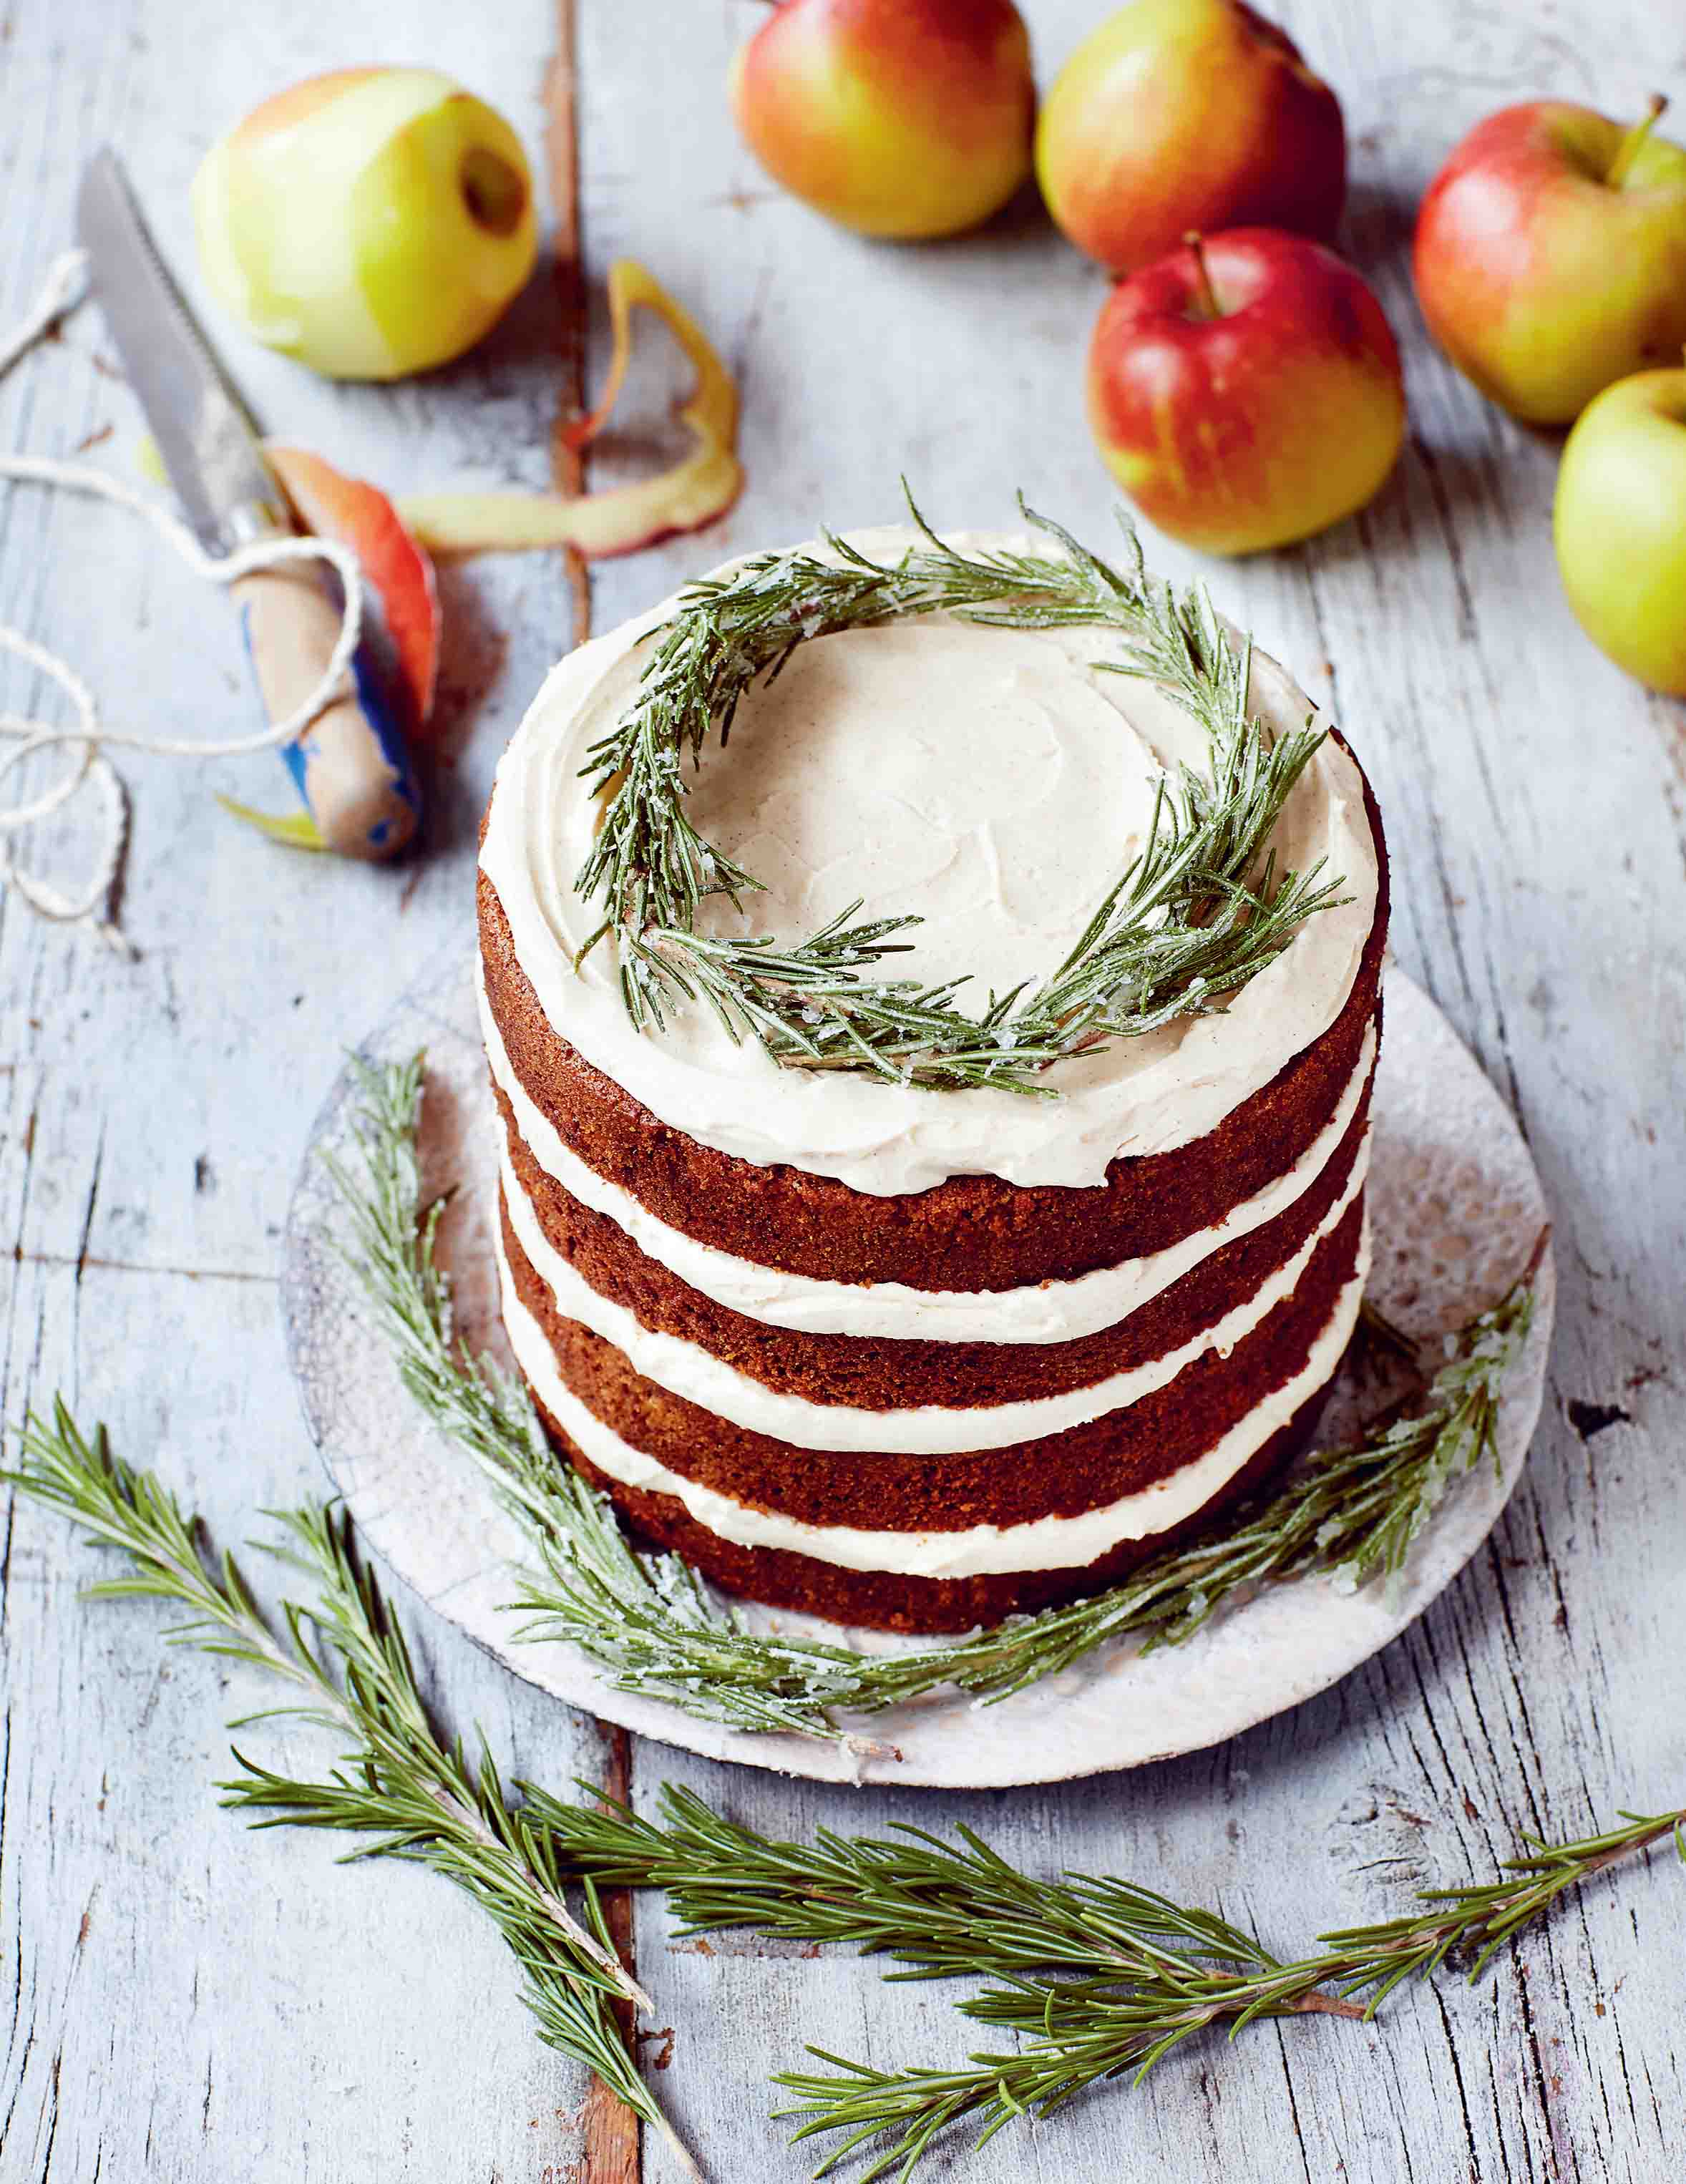 Apple, parsnip and rosemary syrup cake